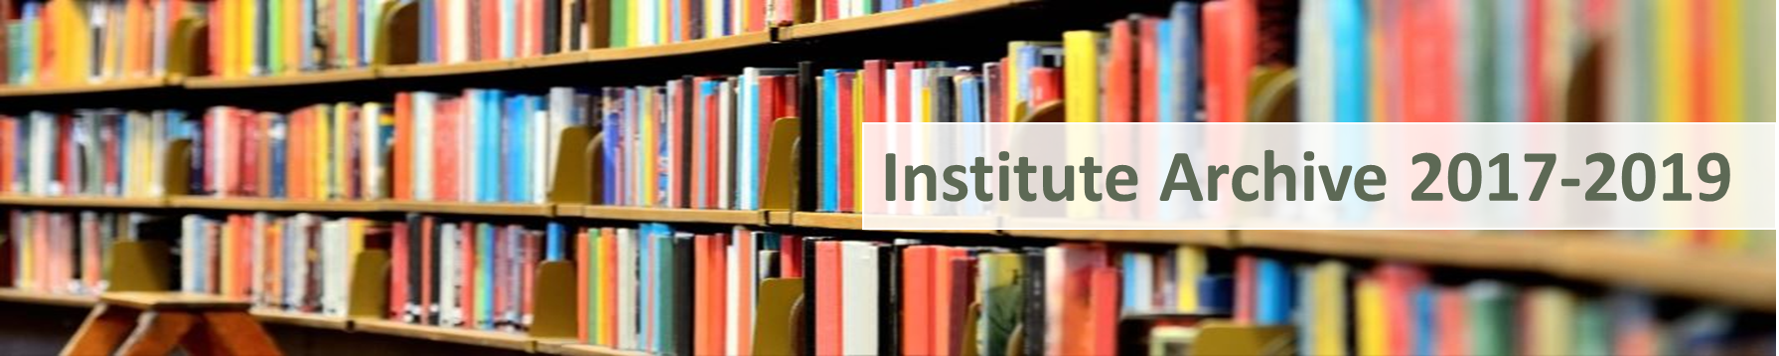 Institute Archive Header 1.png